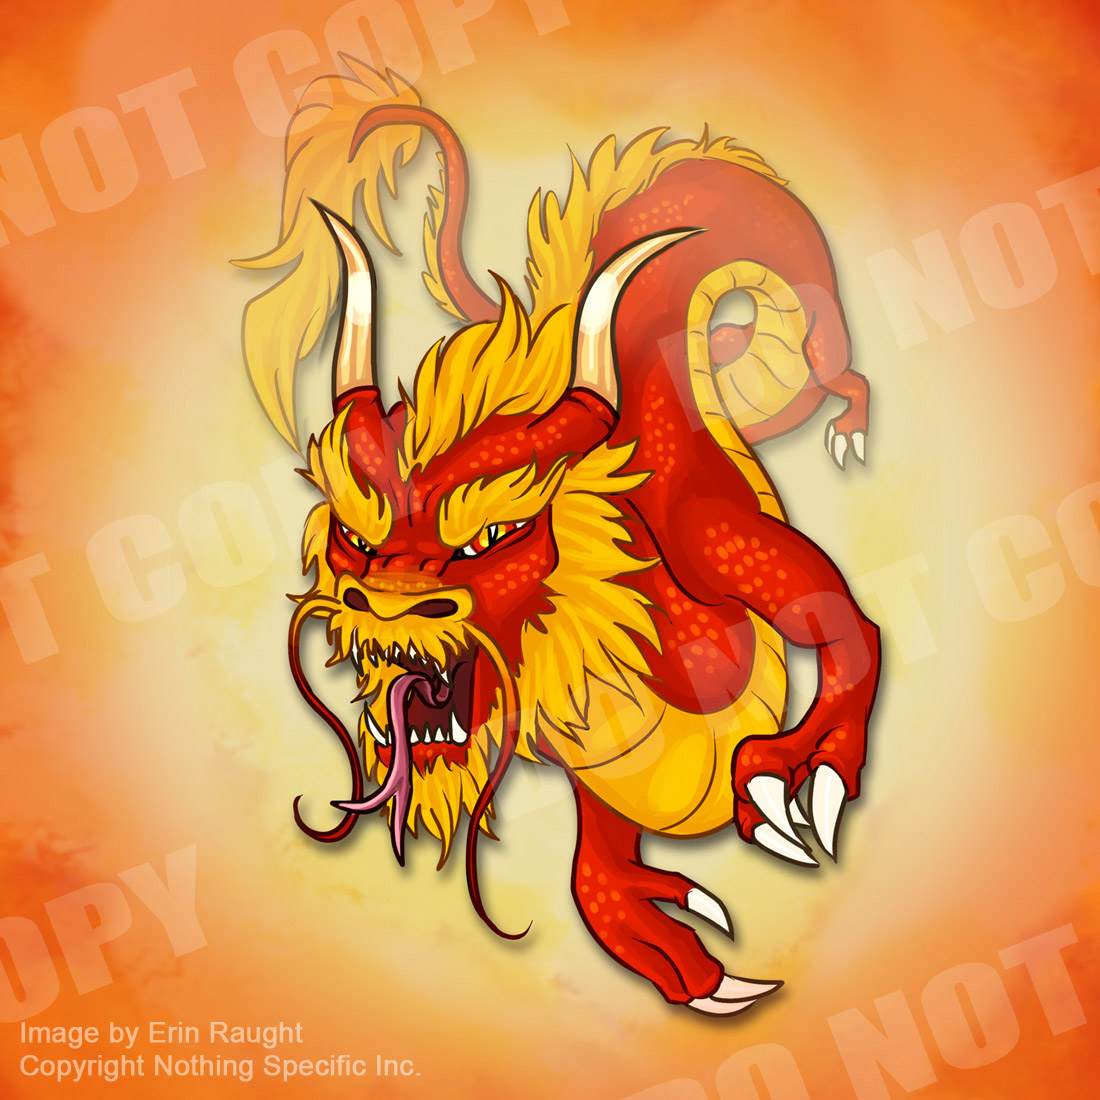 7179 - Chinese Dragon - Flying Serpent - Fantasy - Red.jpg